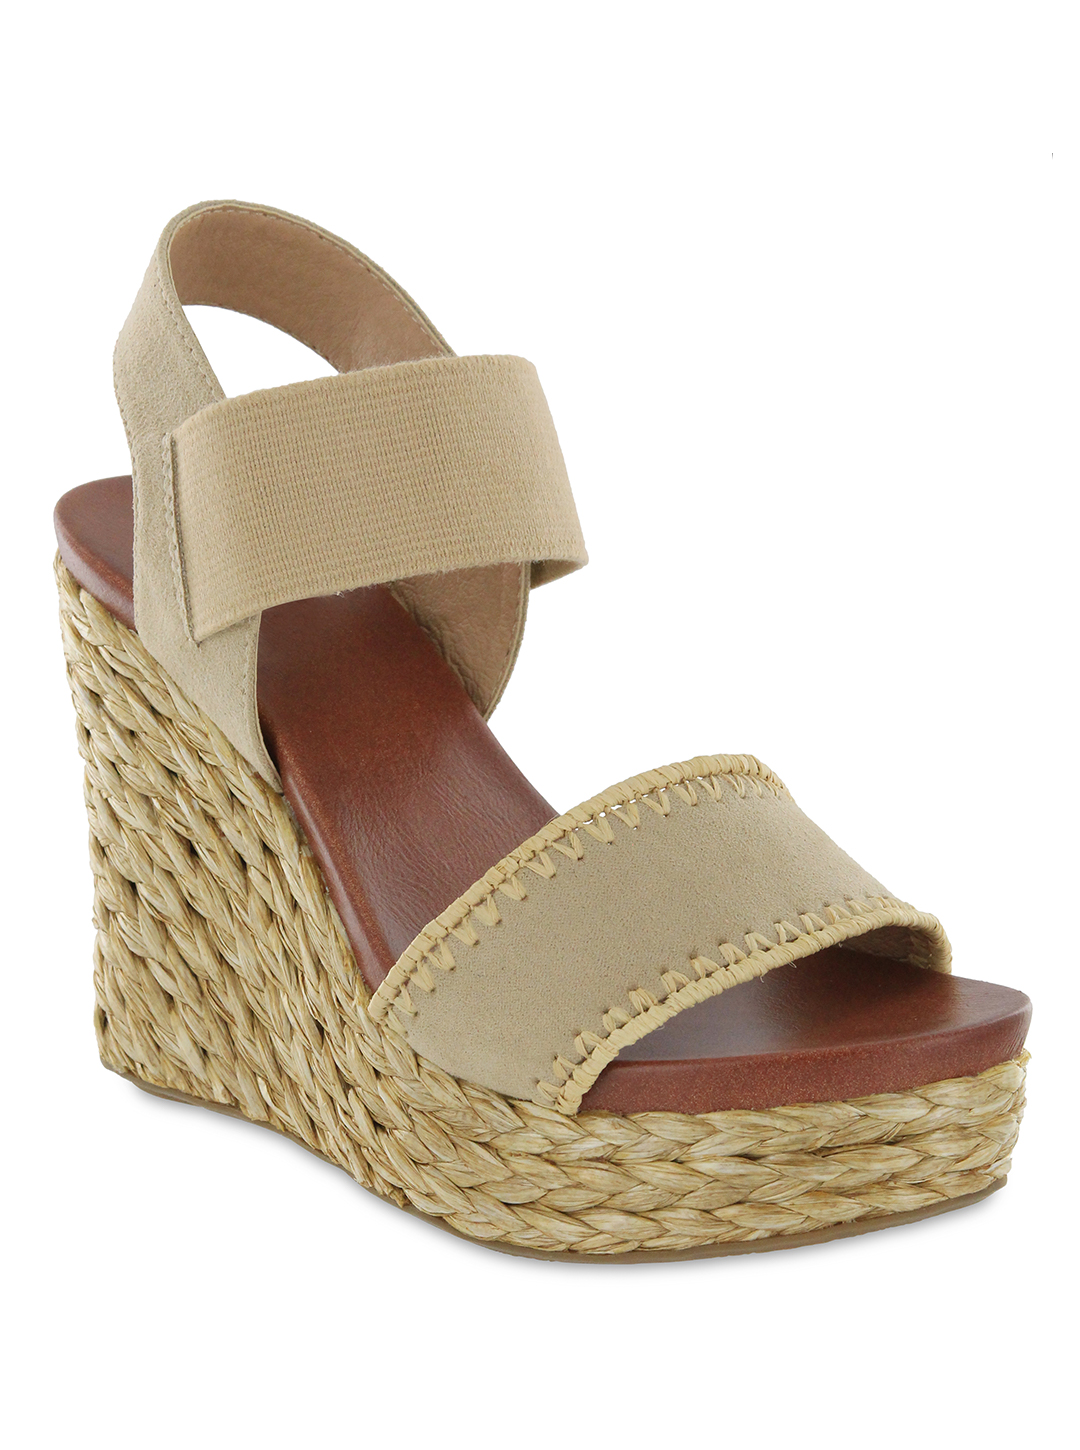 Mia Yessica Espadrille Sandal - natural - Front